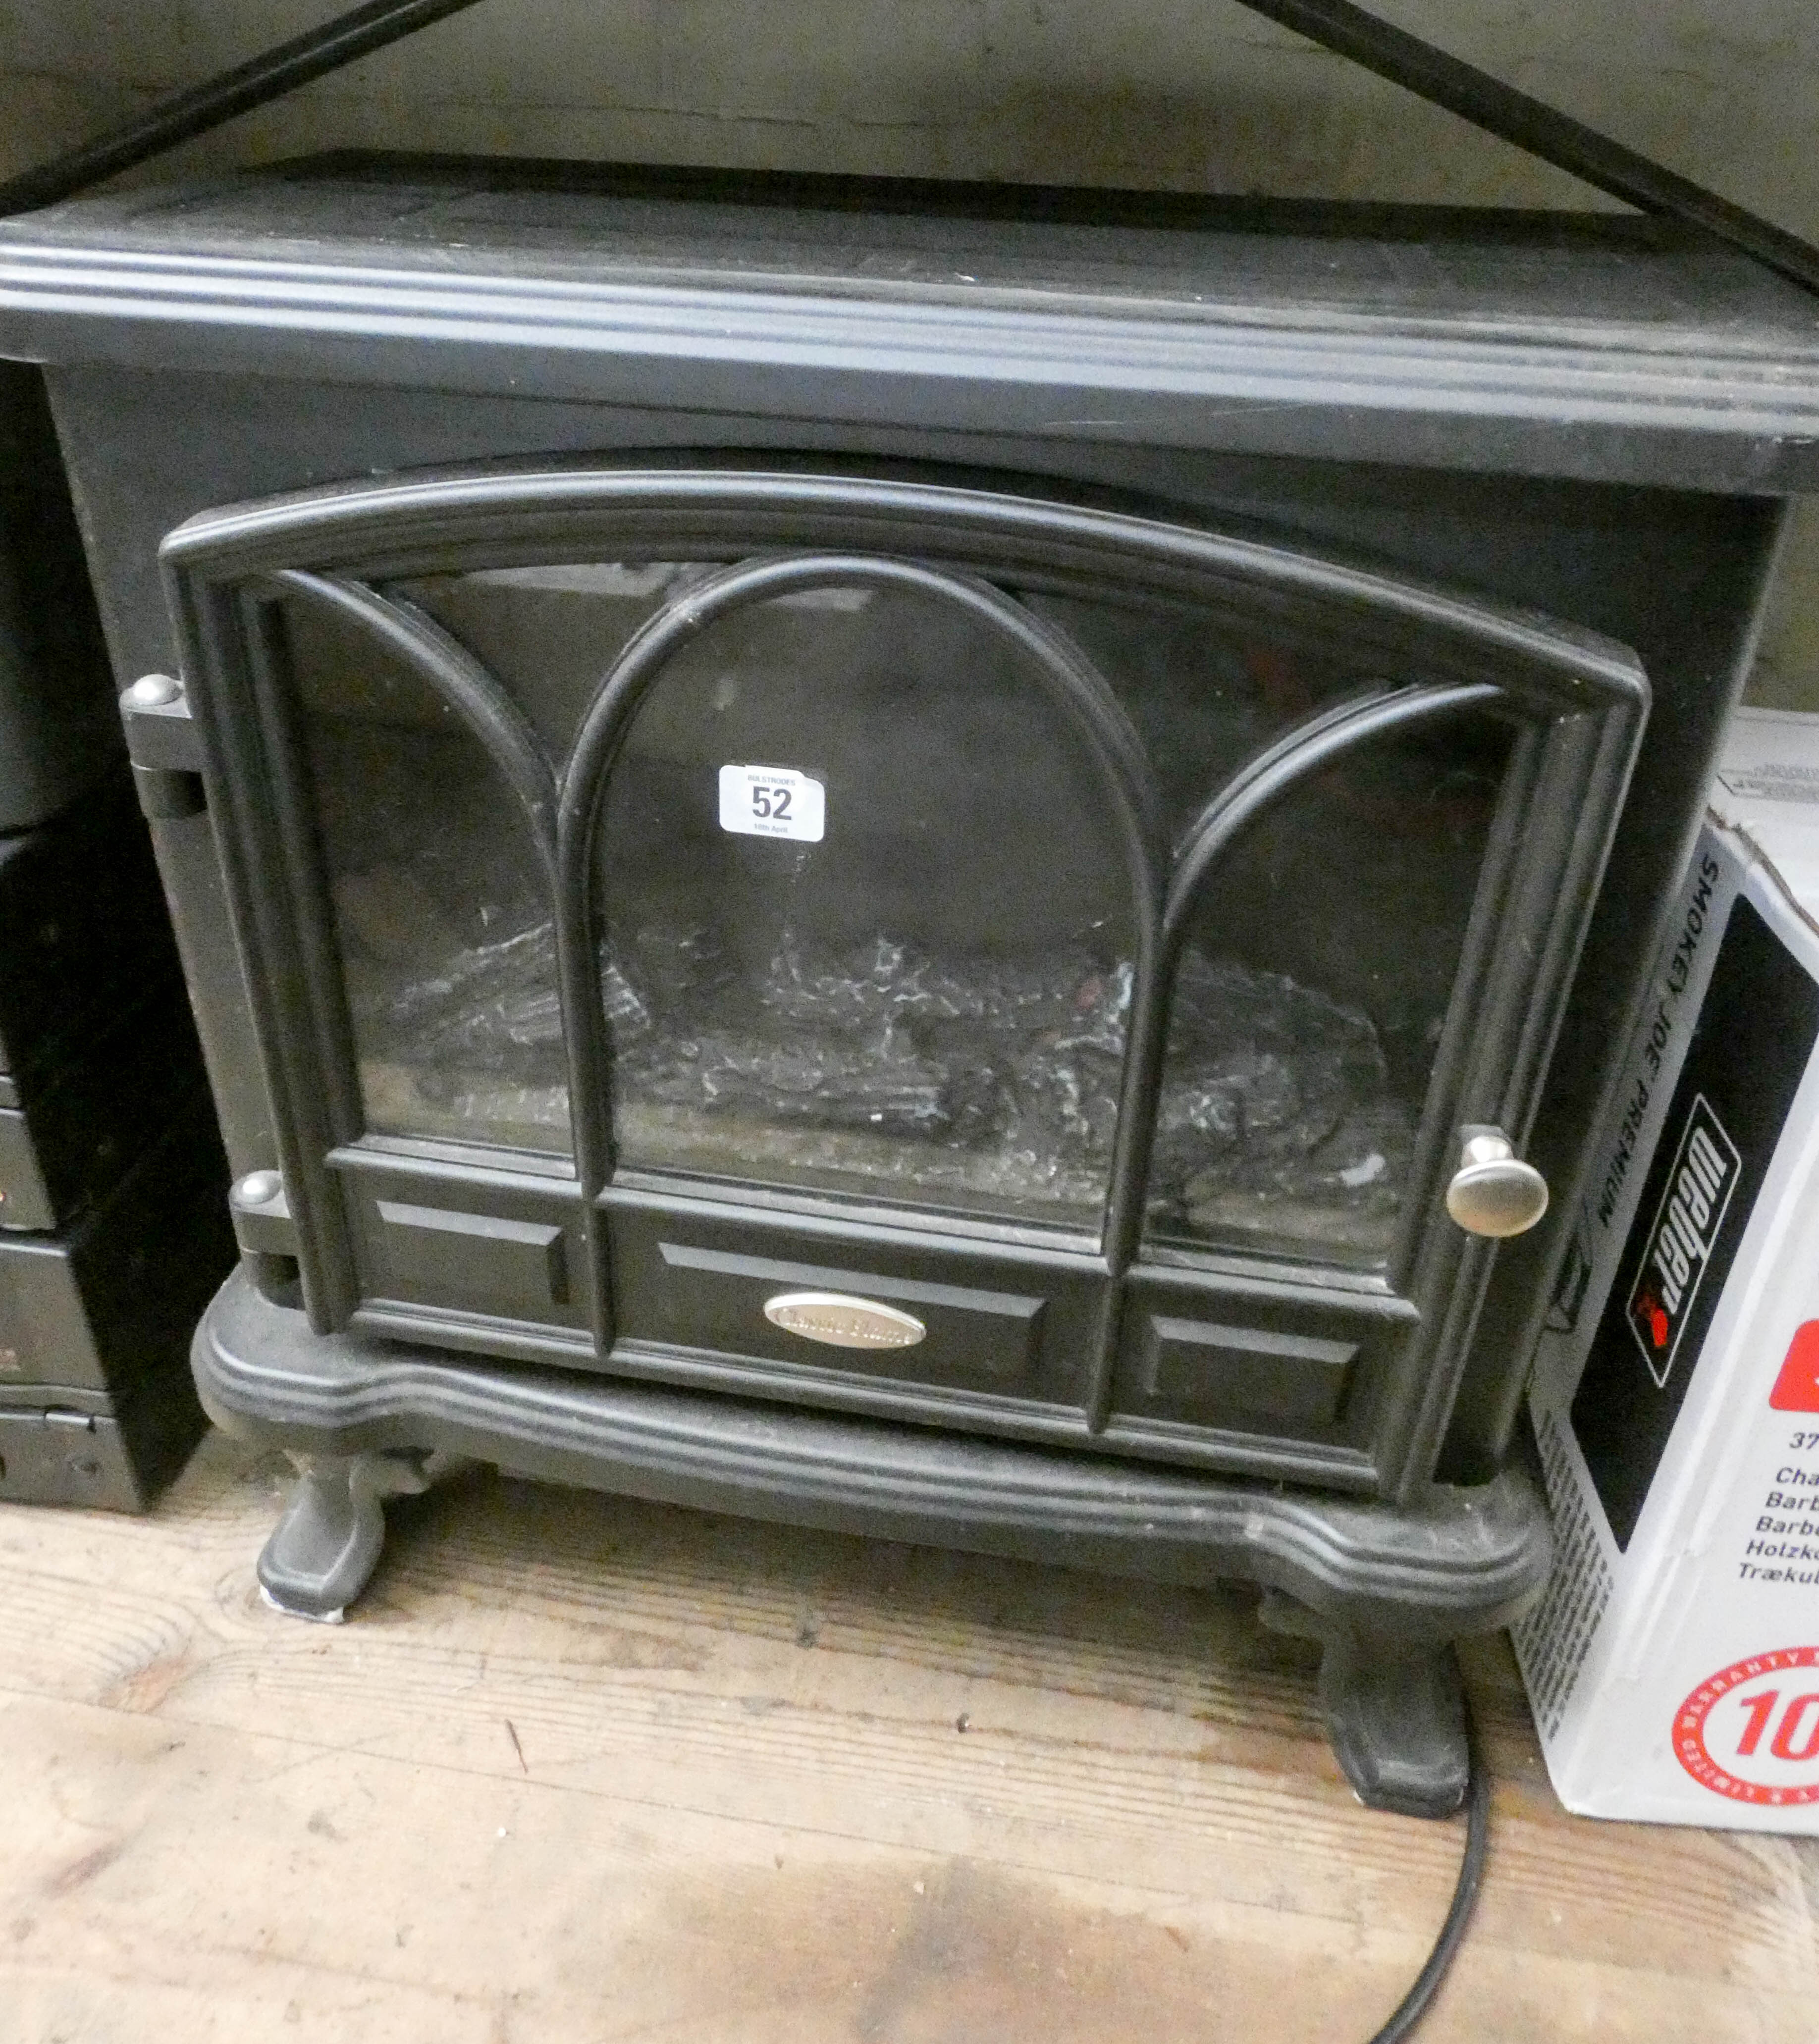 Lot 52 - A low effect style electric heater